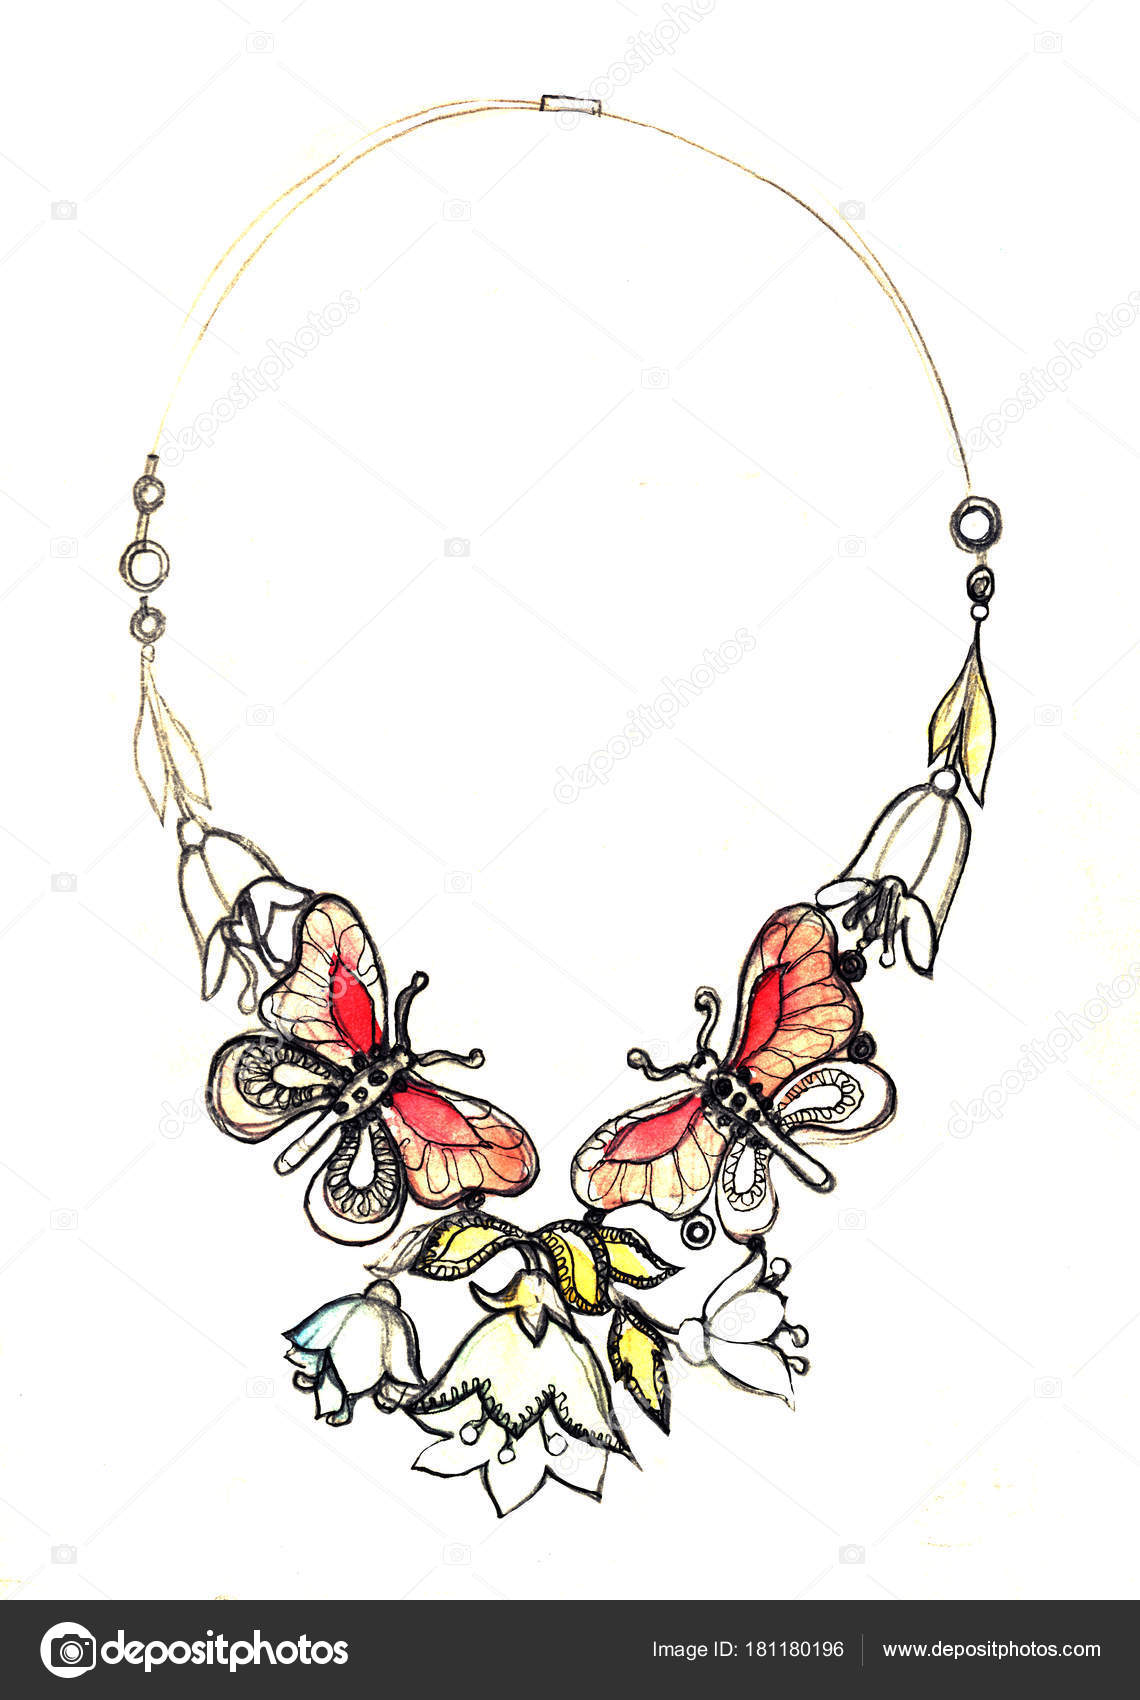 Watercolor Jewelry Illustration Necklace Fashion Sketch Jewelry